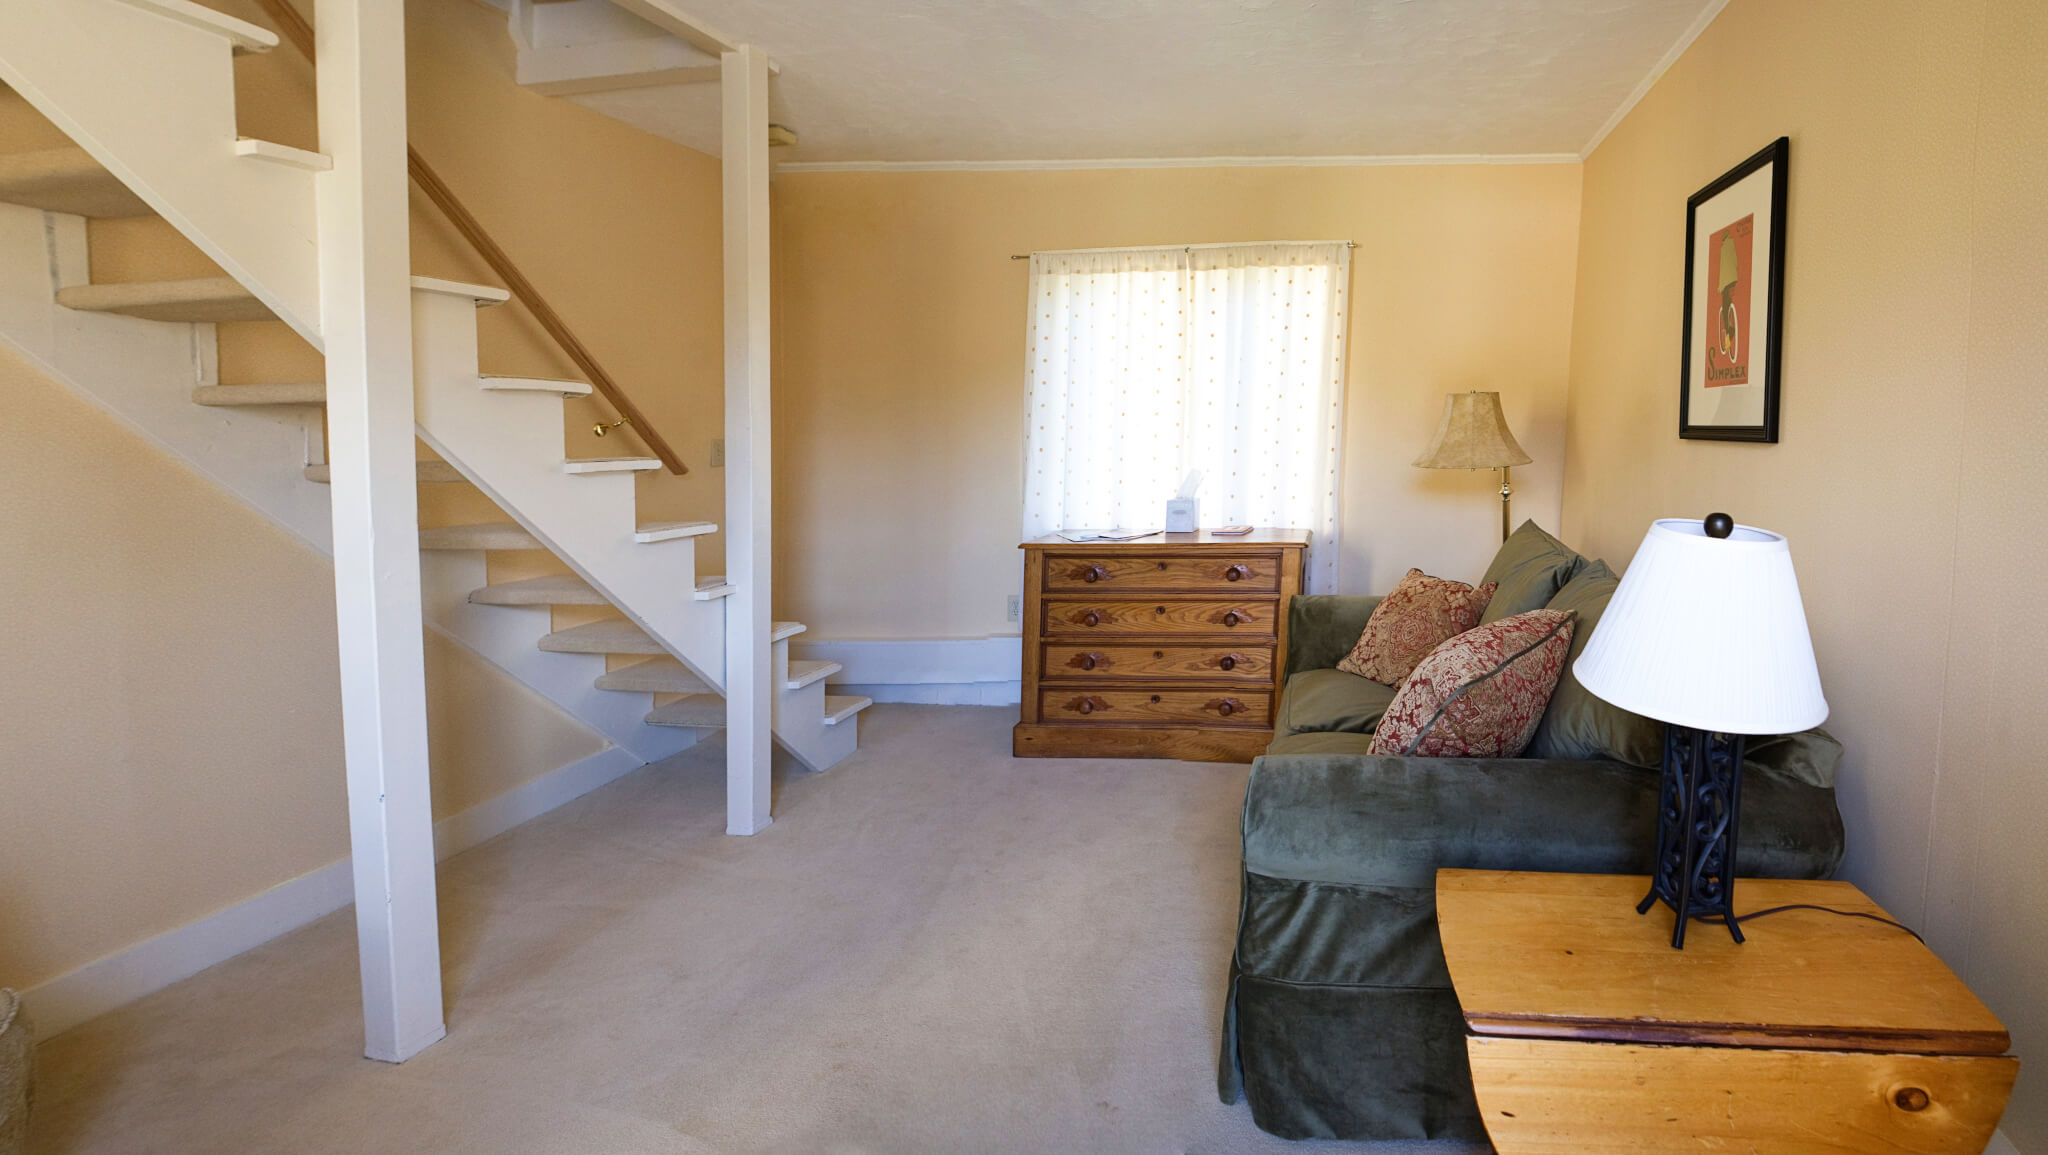 Couch with dresser and lamp